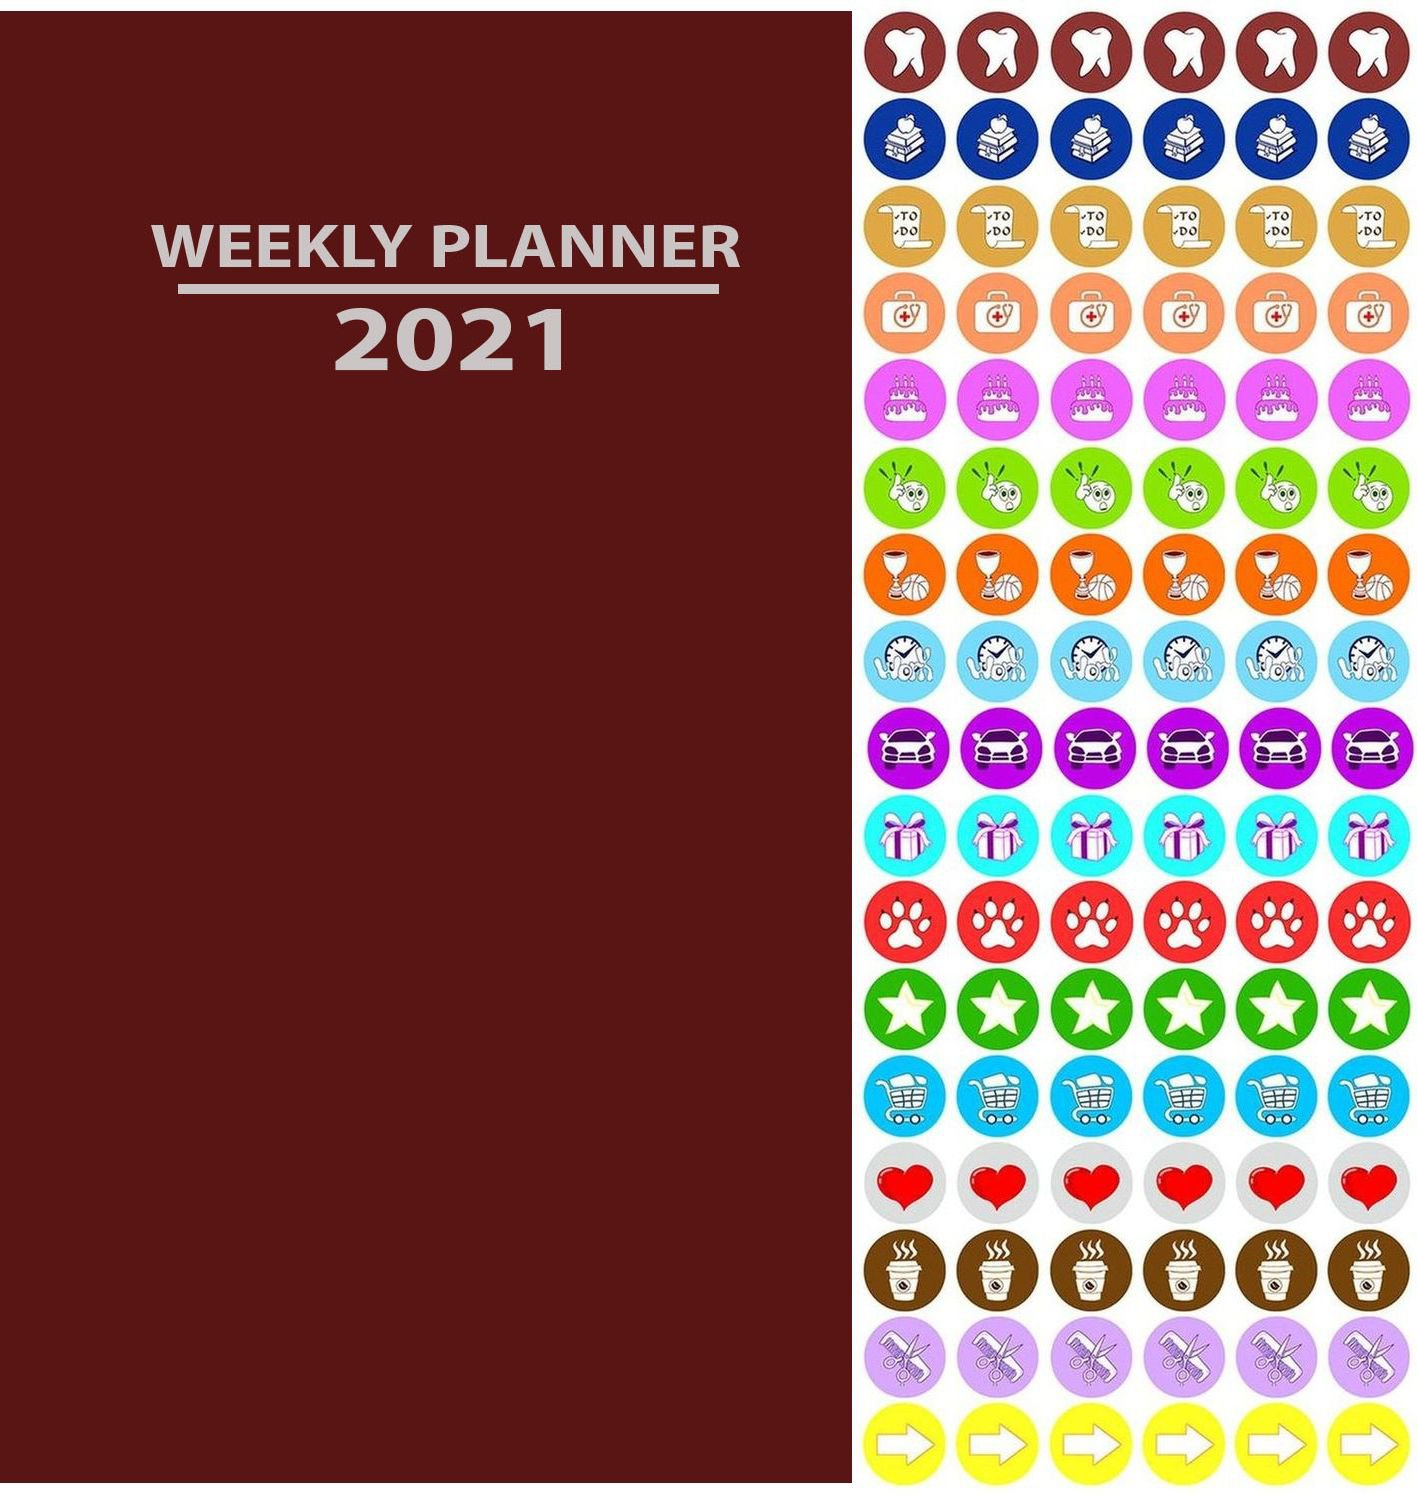 2020 Weekly Pocket Appointment Planner/Calendar/Organizer (Red) - with 100 Reminder Stickers